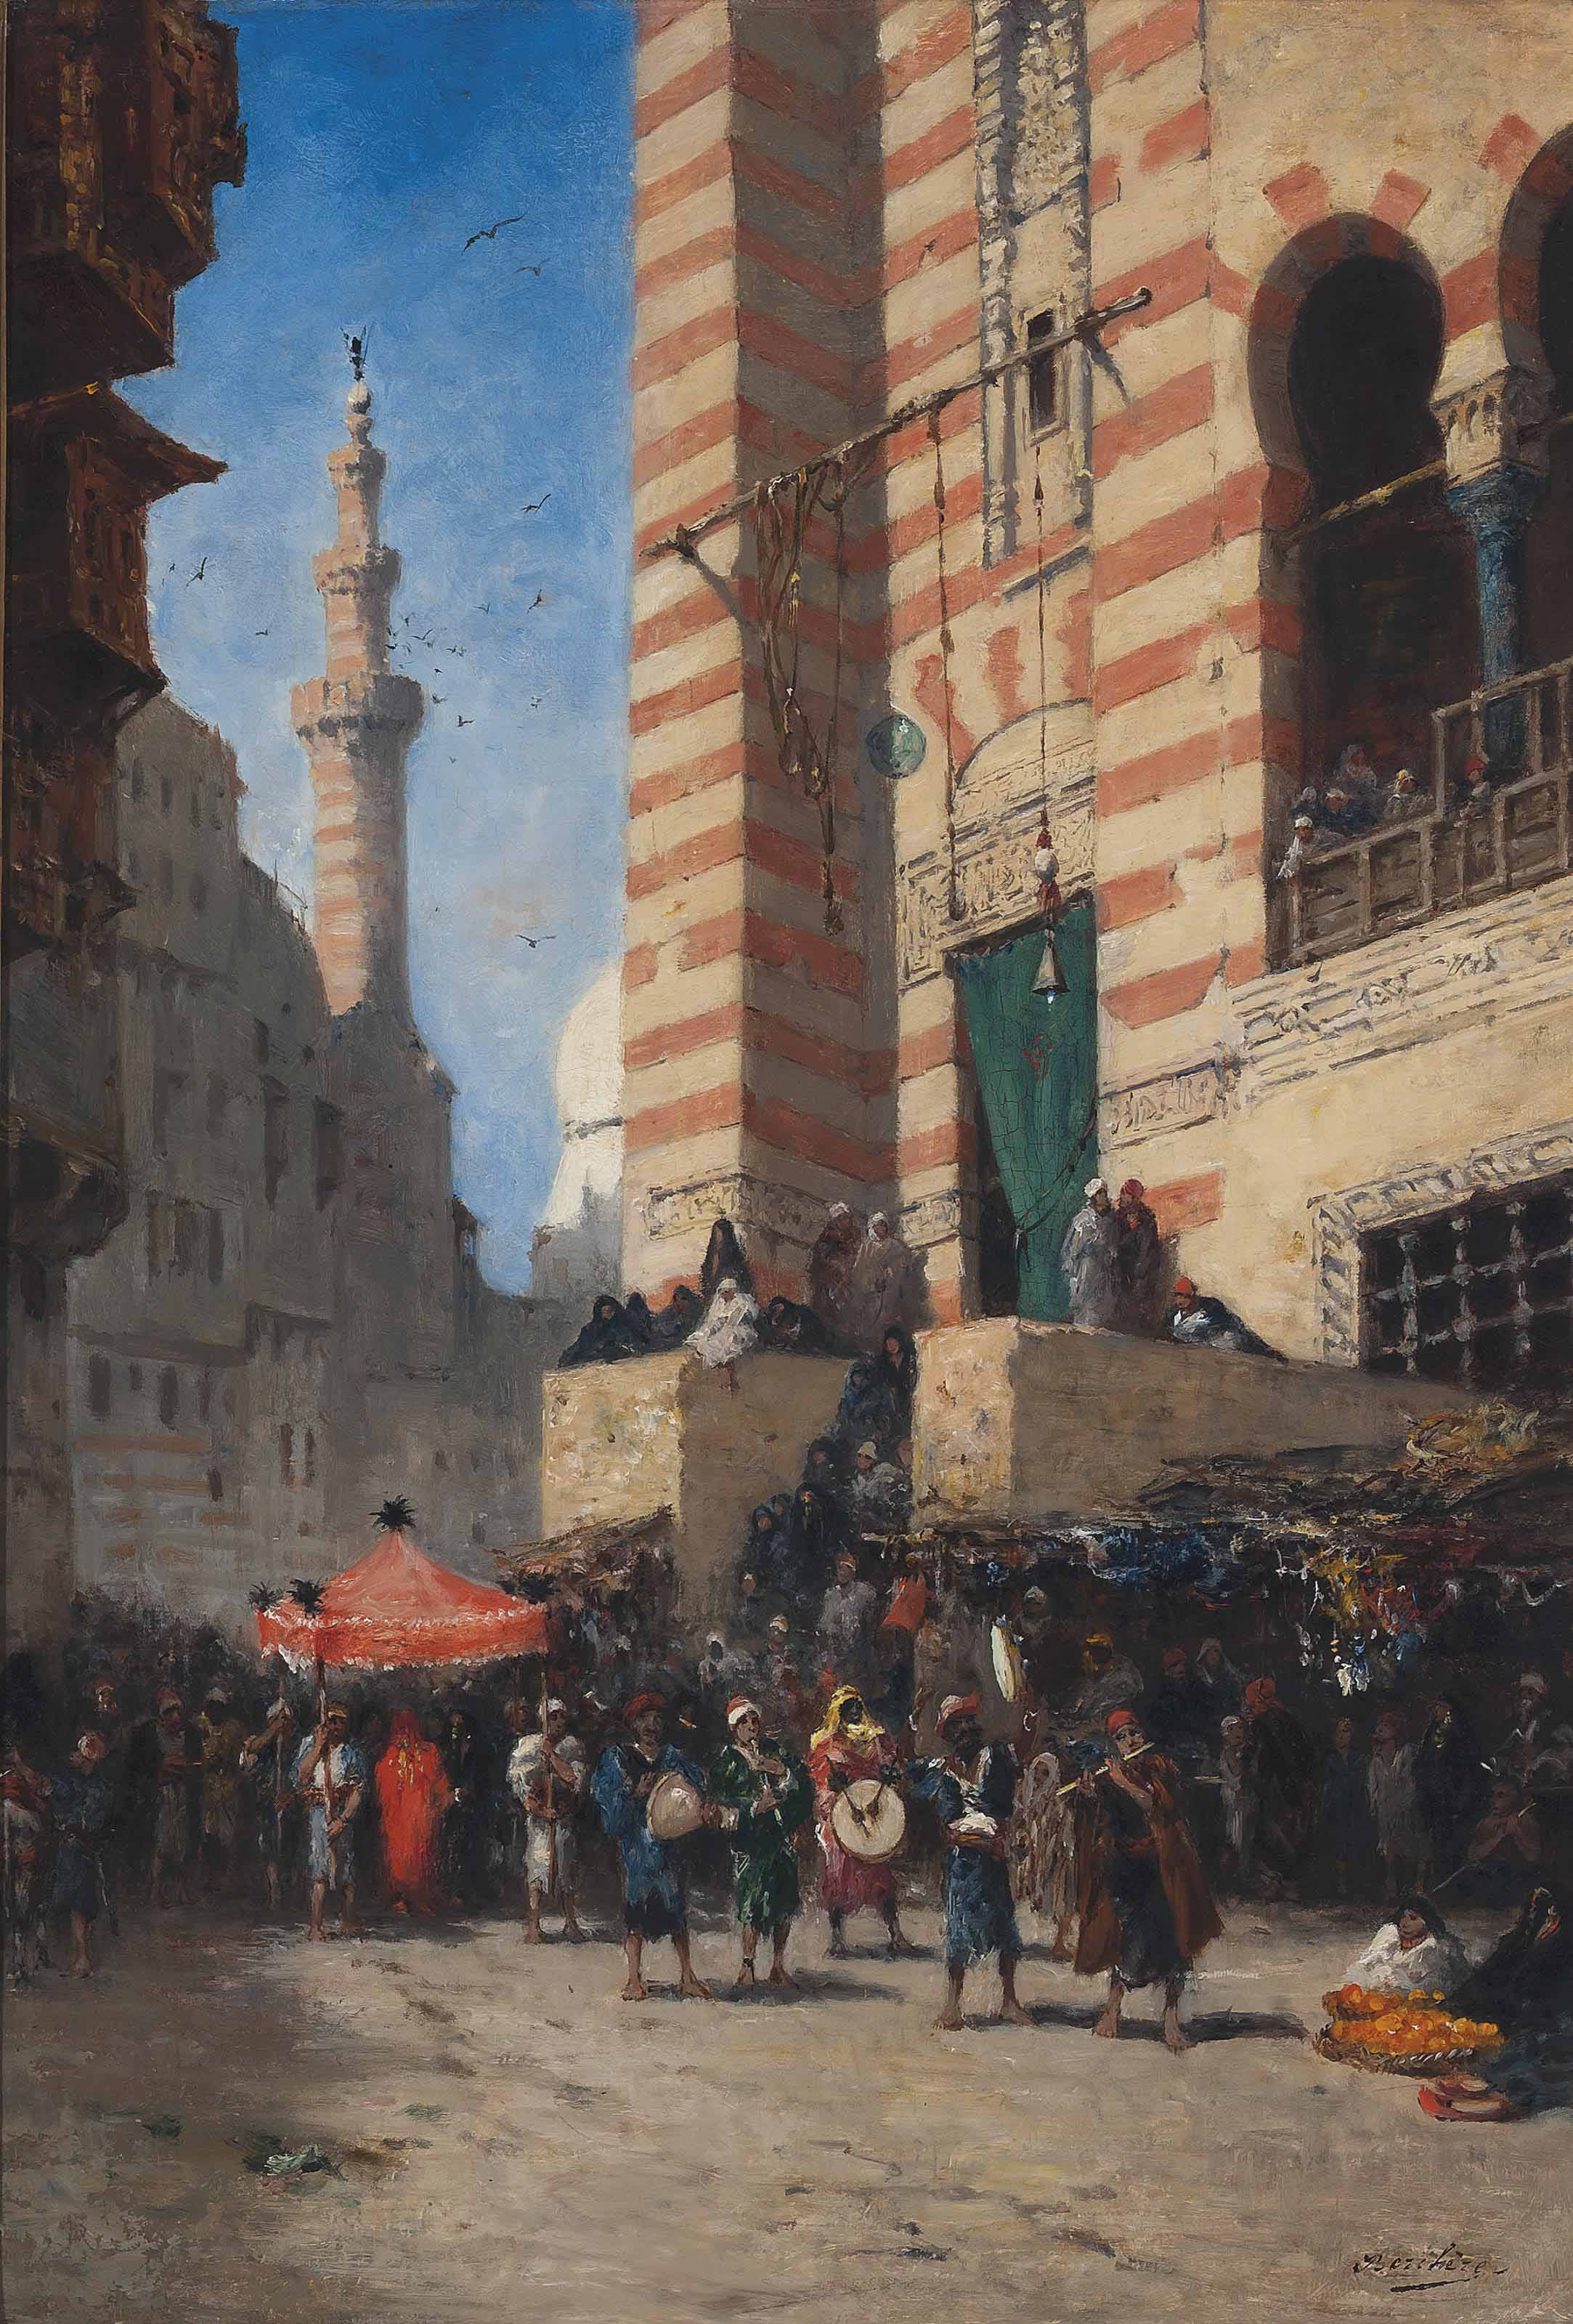 A procession in Cairo